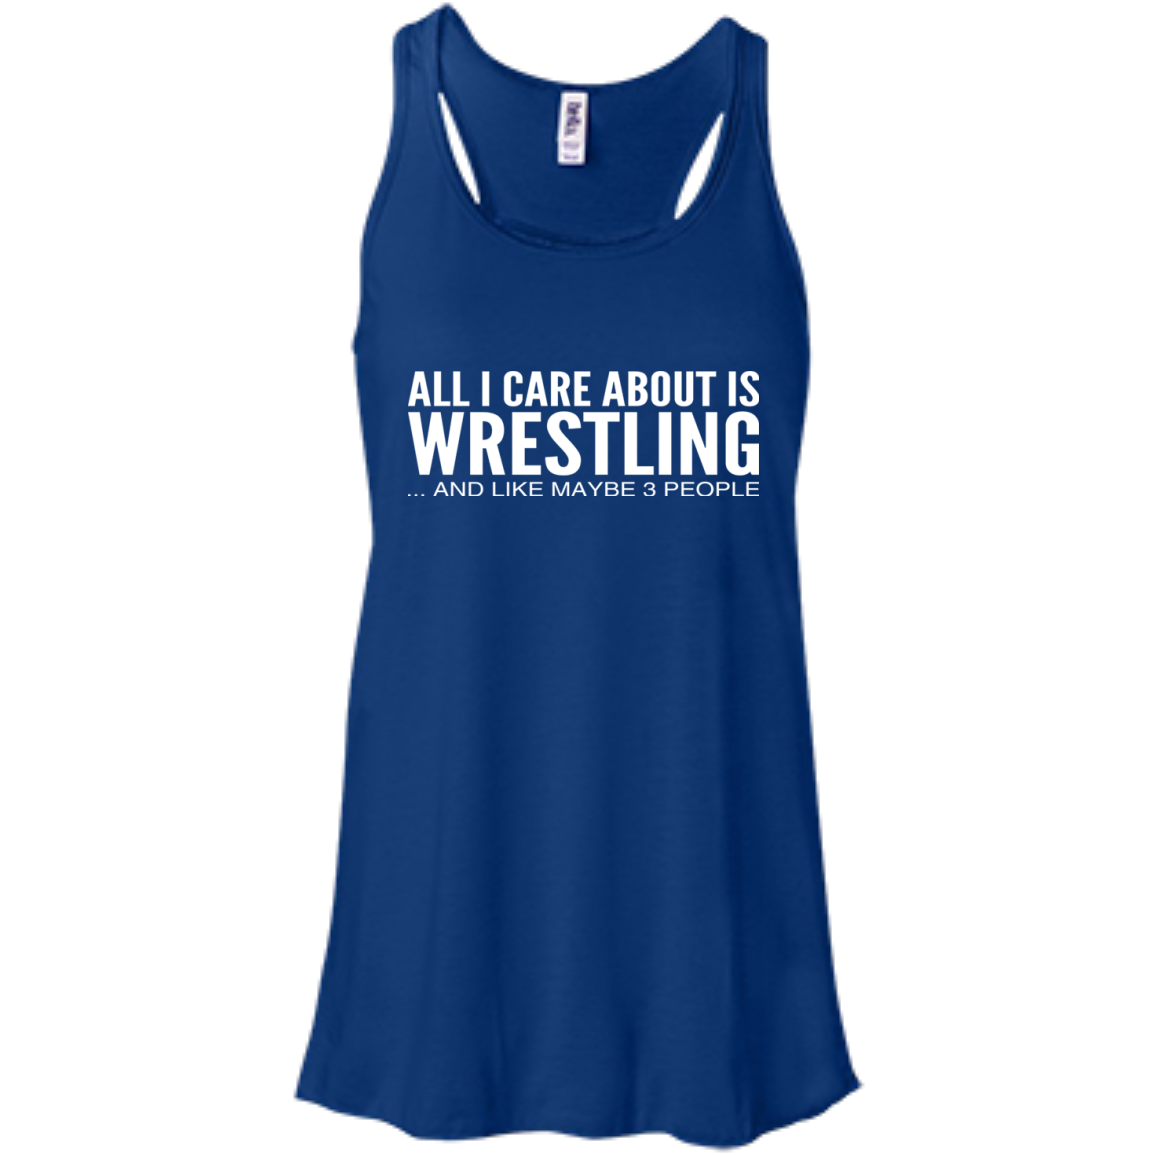 All I Care About Is Wrestling And Like Maybe 3 People Flowy Racerback Tanks